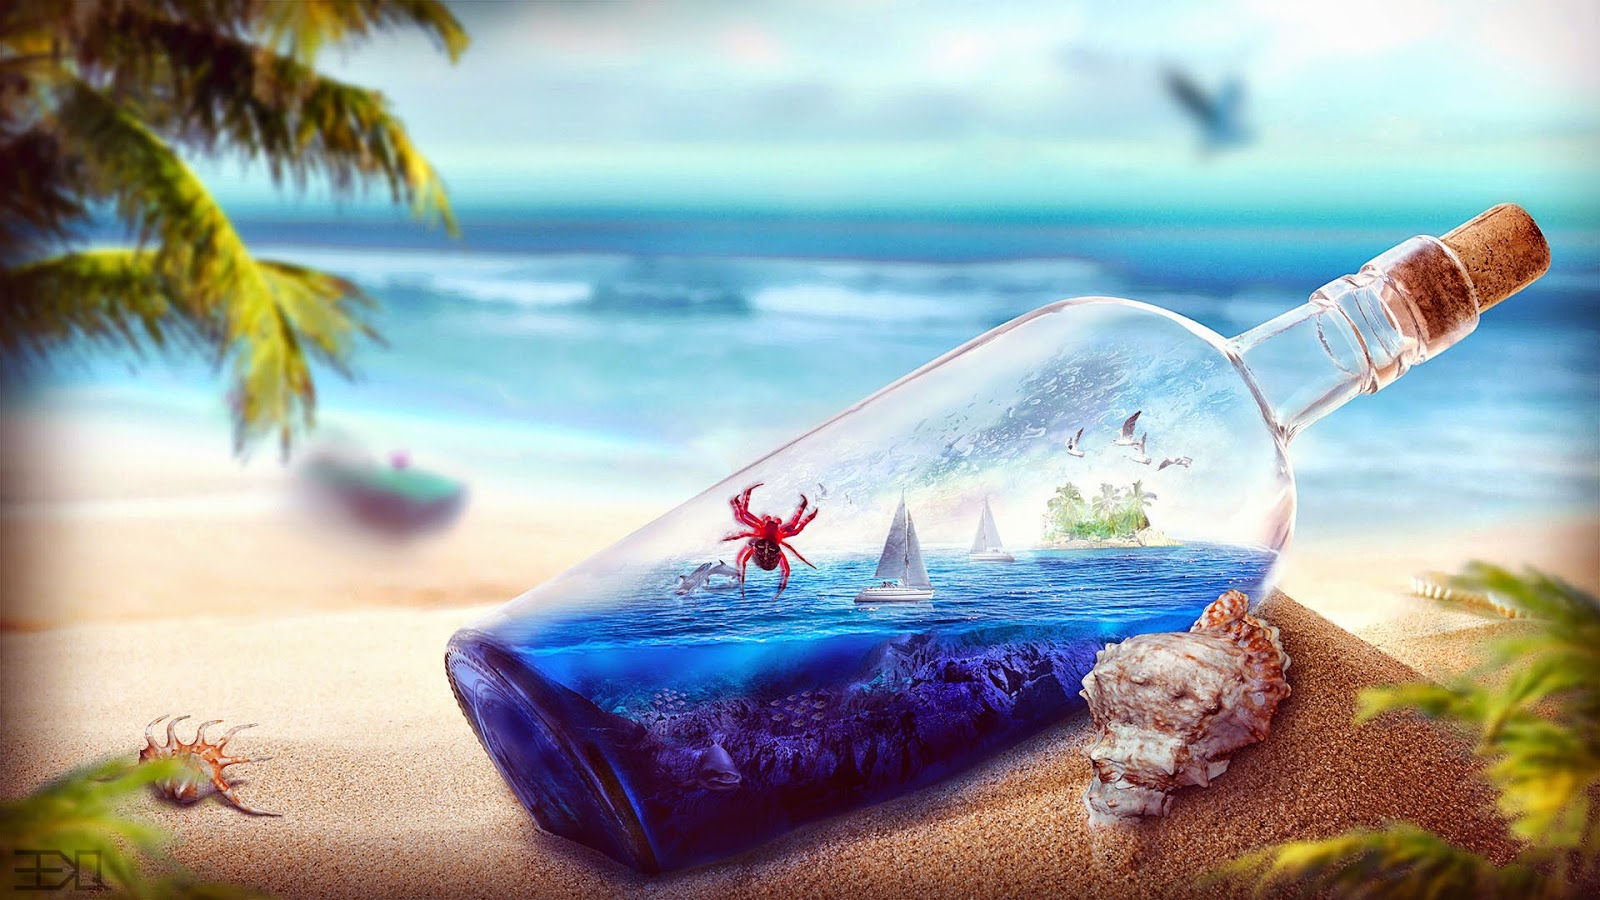 HD Creative Wallpapers HD Wallpapers High Quality Wallpapers